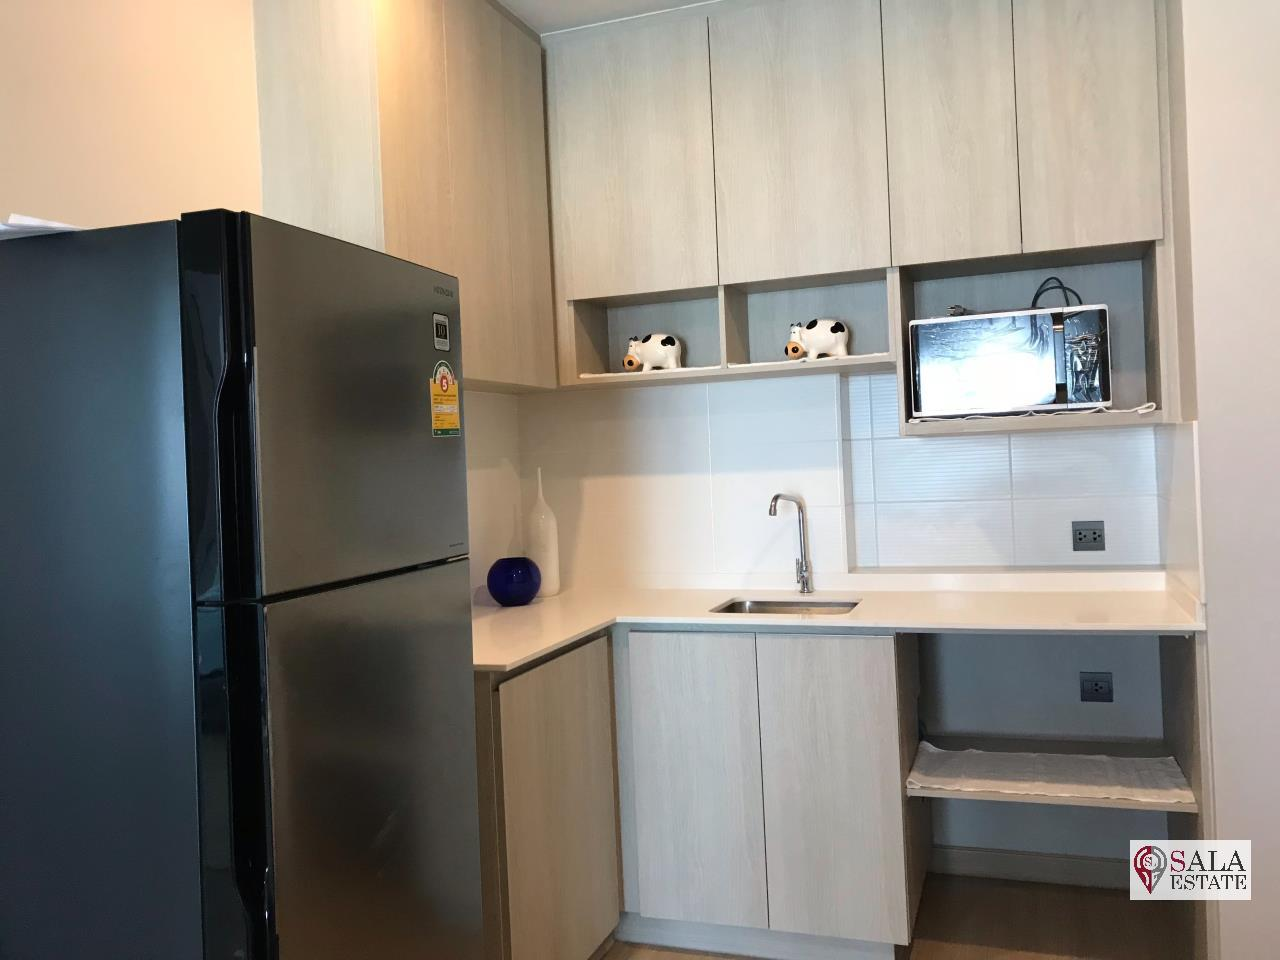 SALA ESTATE Agency's LUMPINI SUITE DINDAENG-RATCHAPRAROP – BTS VICTORY MONUMENT, 2 BEDROOM 1 BATHROOM, FULLY FURNISHED, CITY VIEW 6